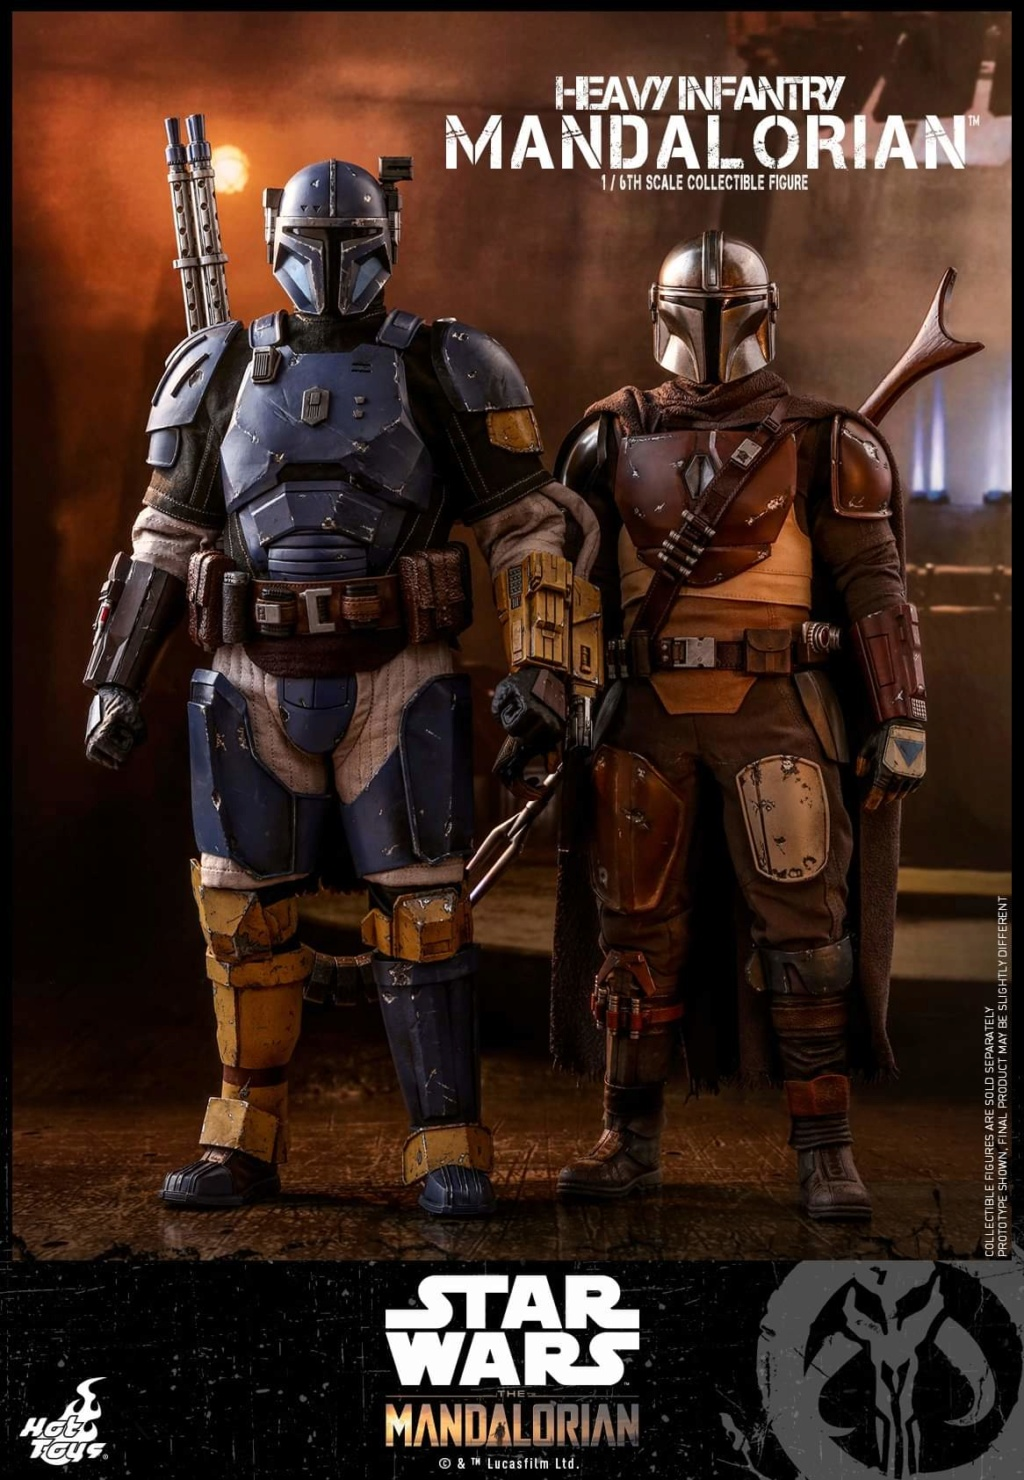 Heavy Infantry Mandalorian Collectible Figure 1/6th Hot Toy. Fb_img65